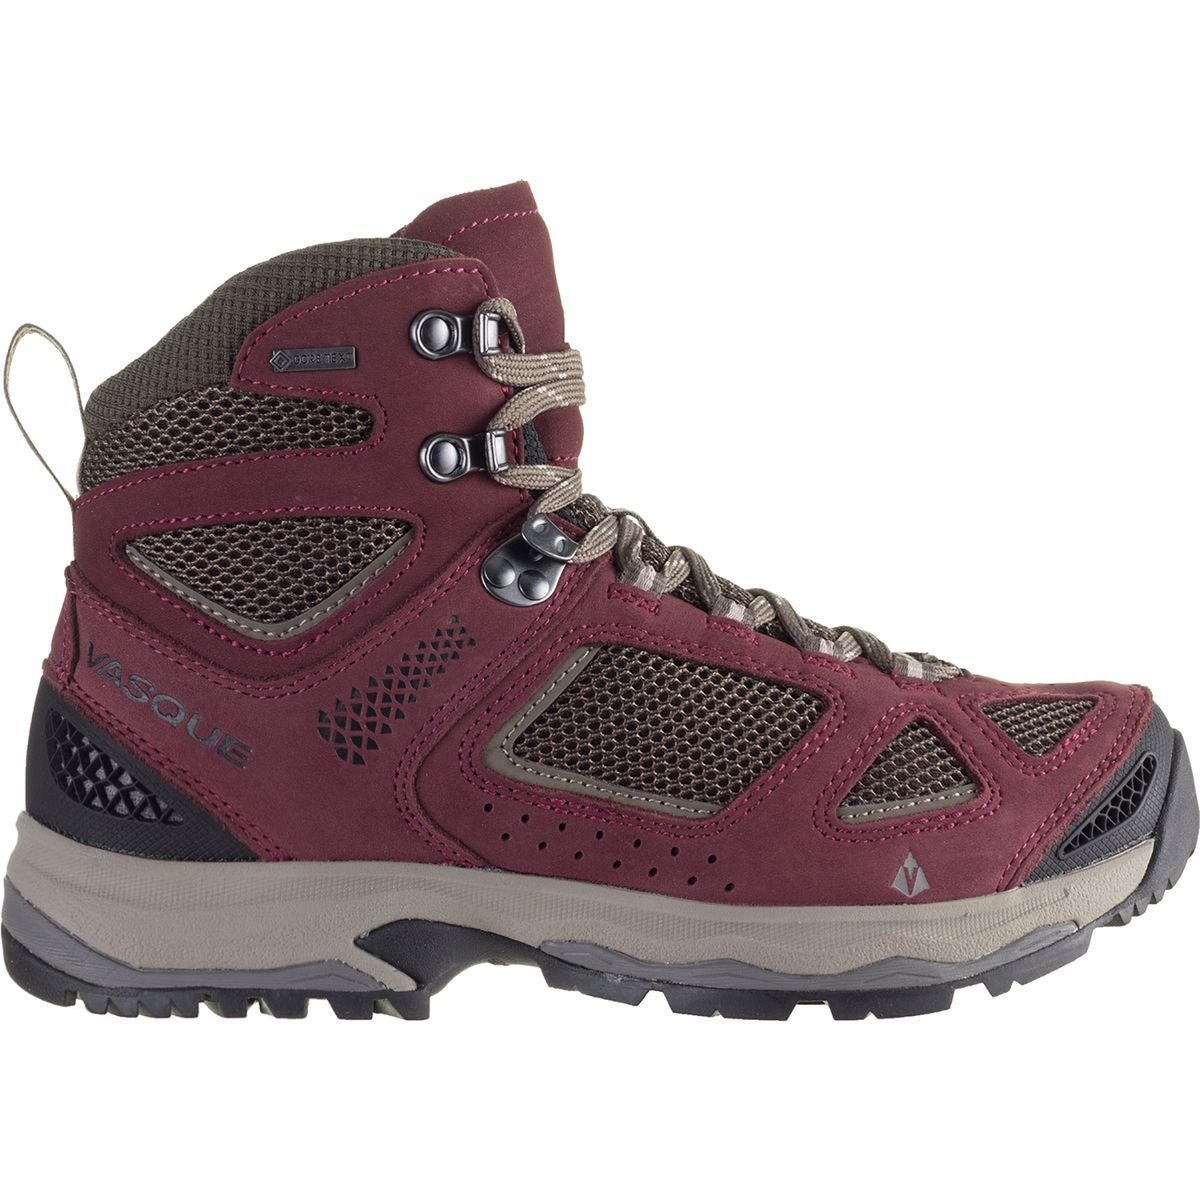 7144c7af26928 Vasque Breeze III GTX Hiking Boot - Women's Red/Brown Olive, 12.0